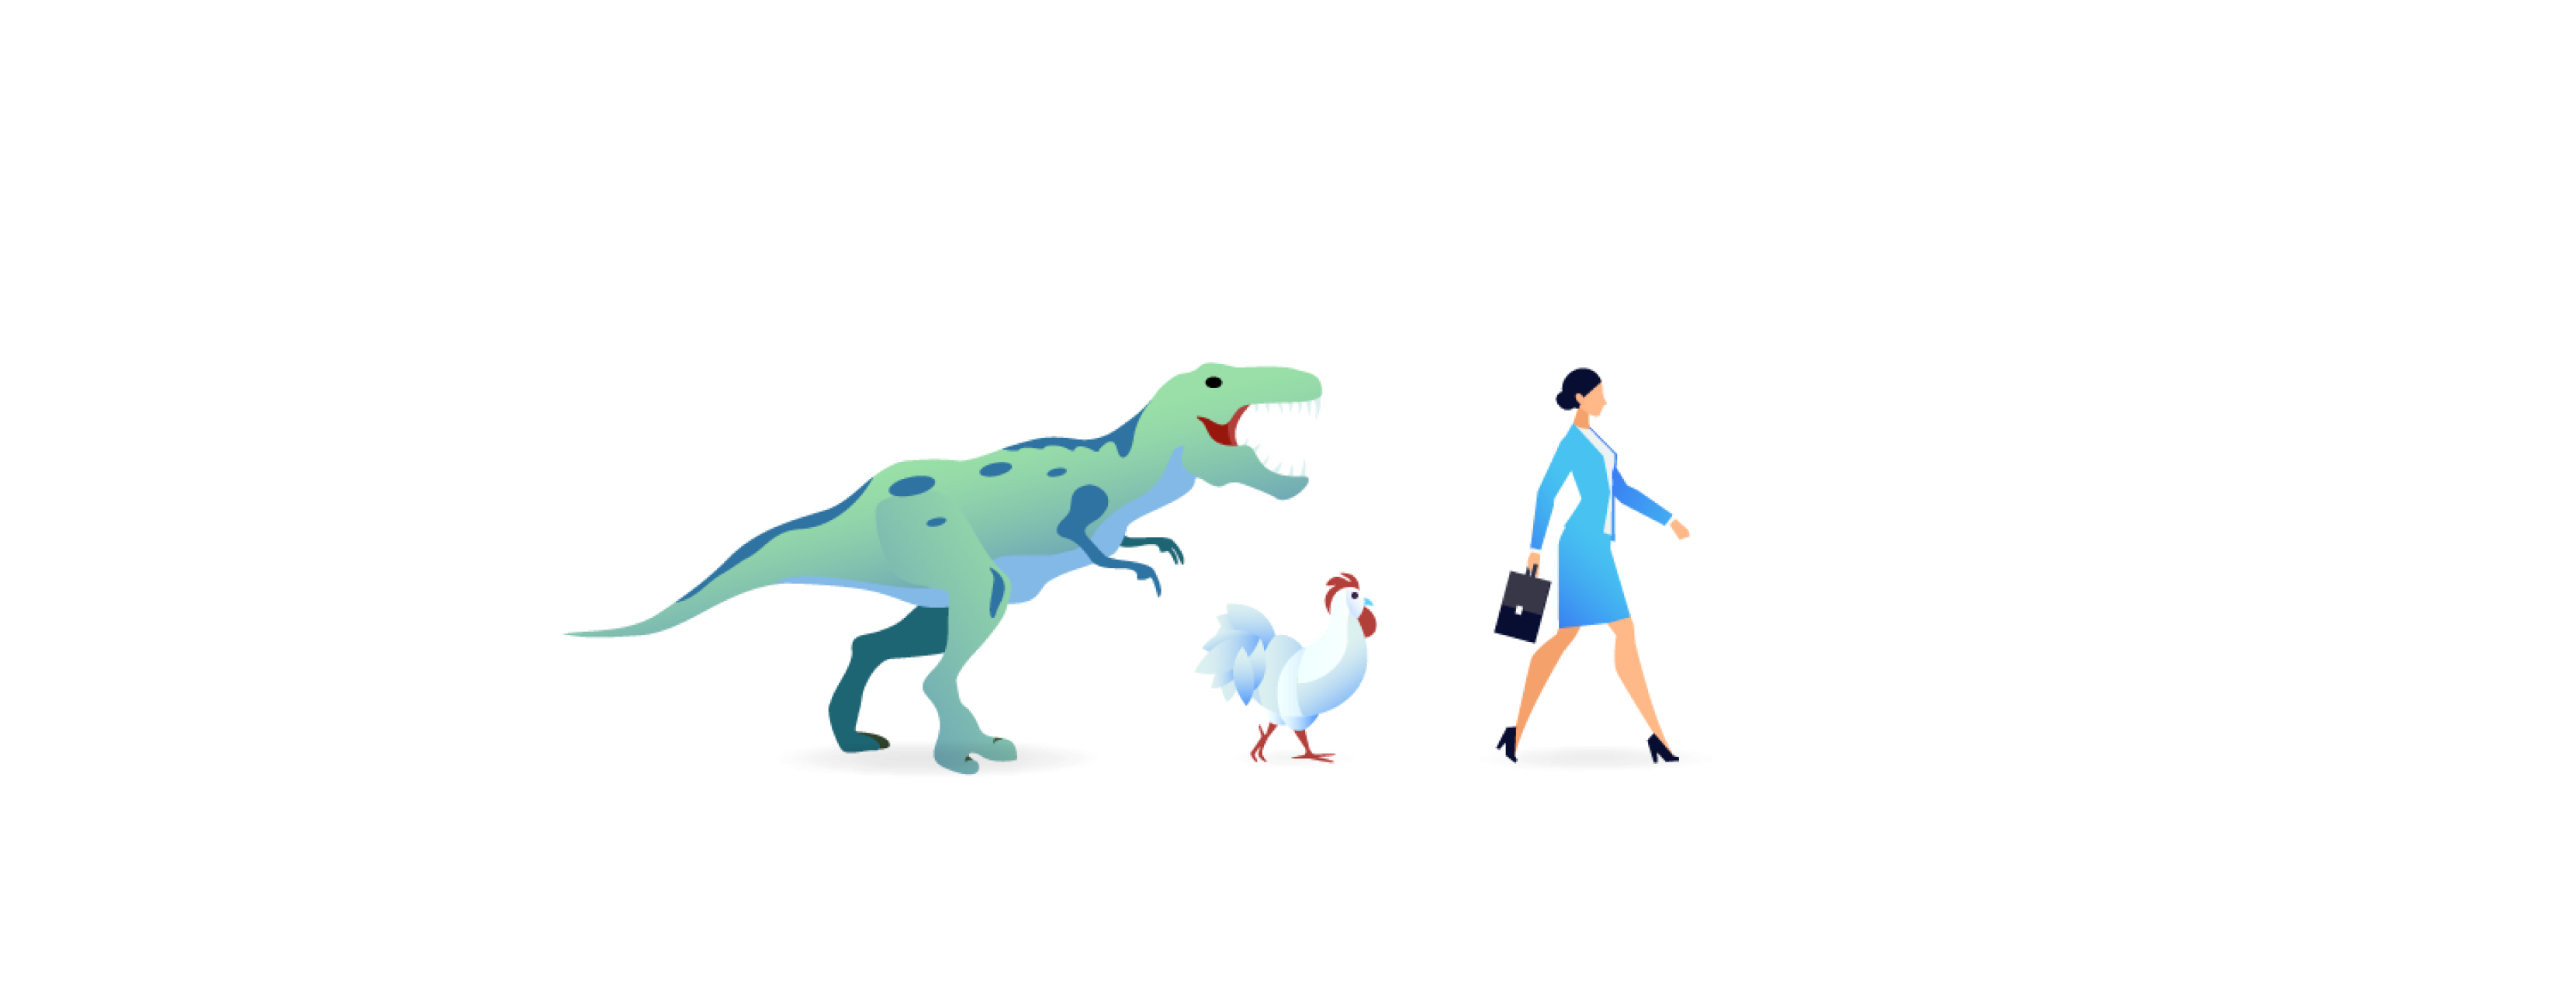 The Future of Internal Audit: Dinosaurs, Chickens, and Data Divas